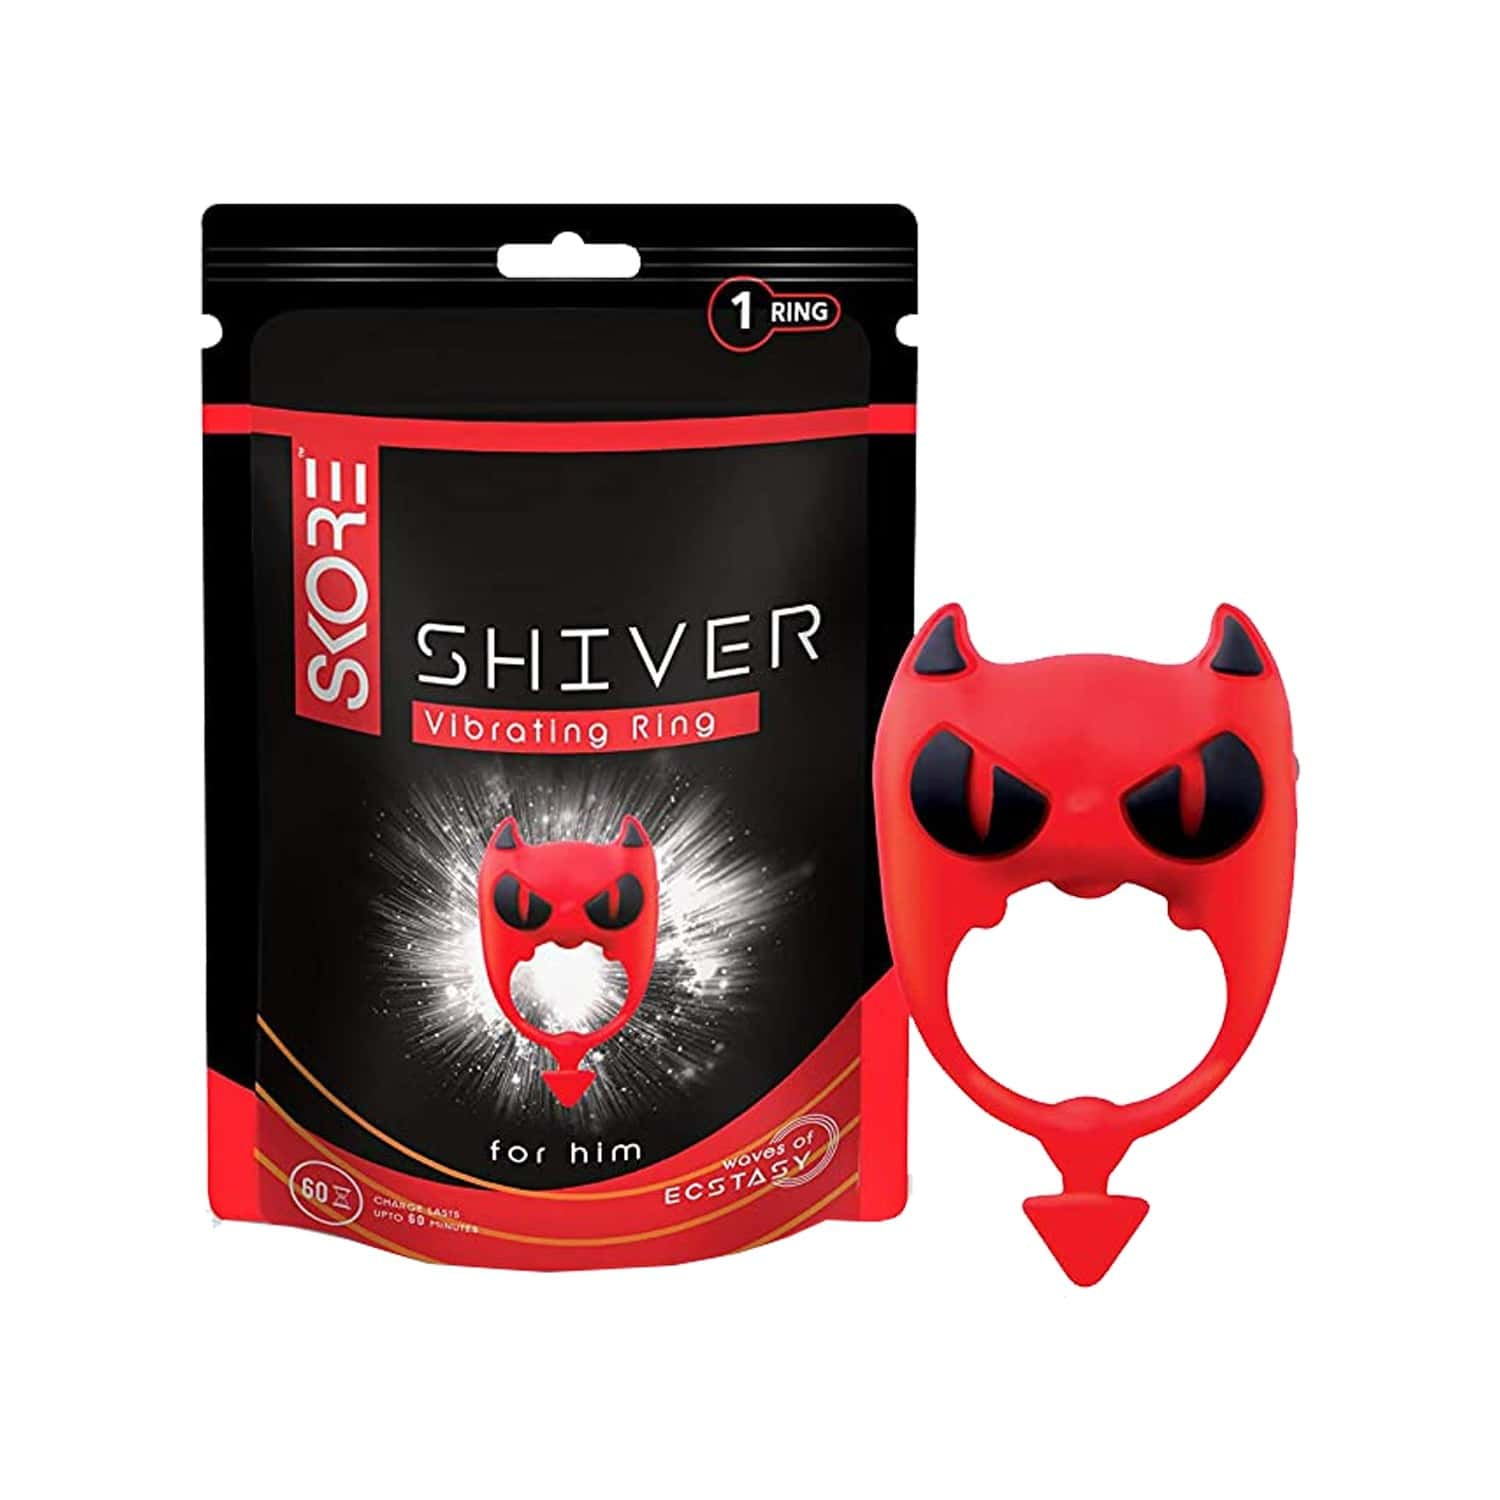 Skore Shiver Sex Toy Vibrating Ring For Him